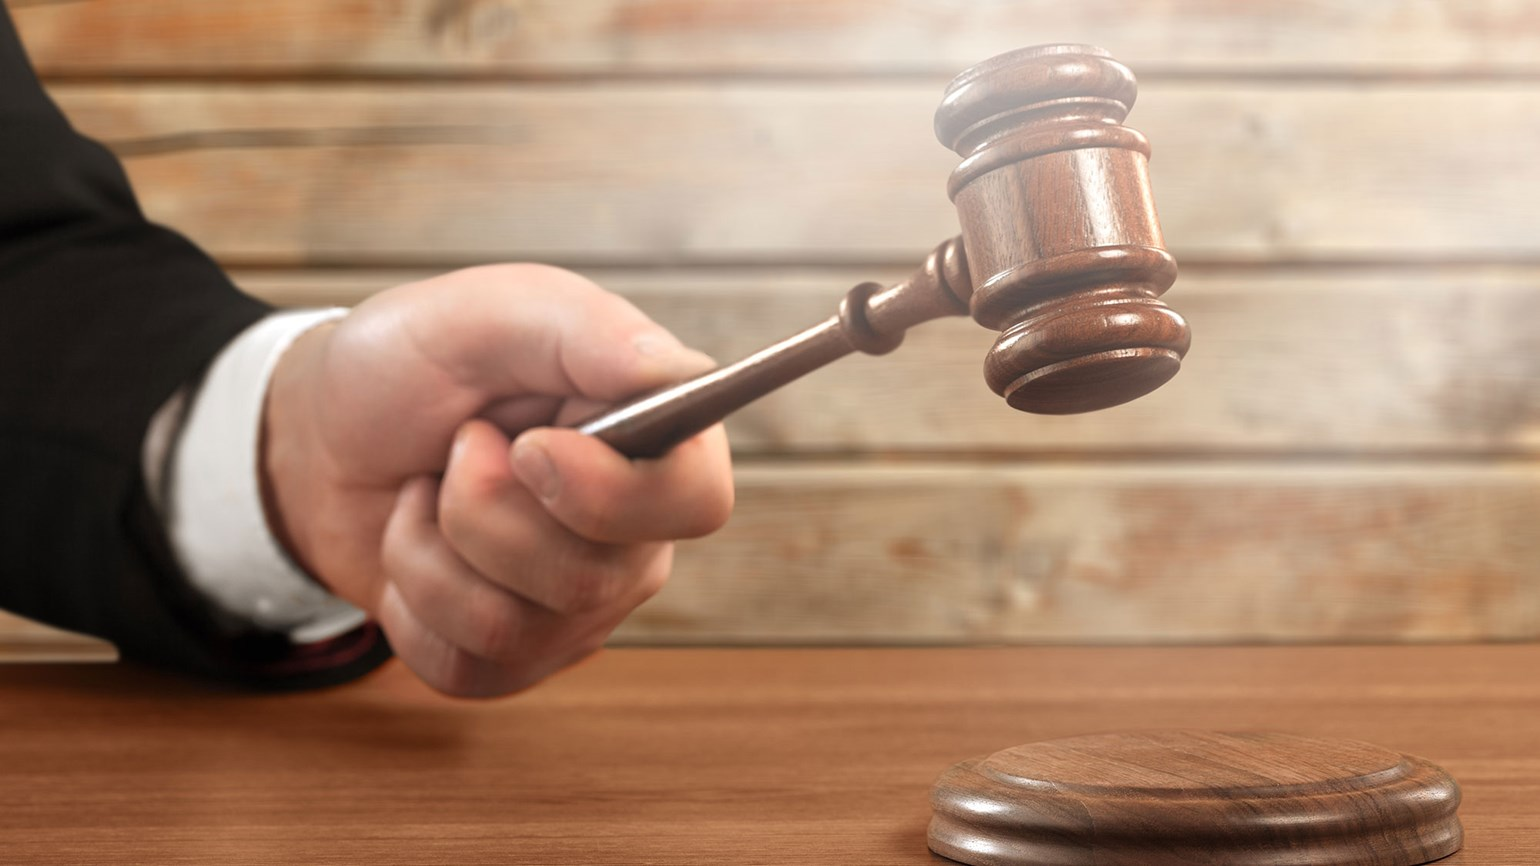 Sabre victorious over DOJ in Farelogix lawsuit